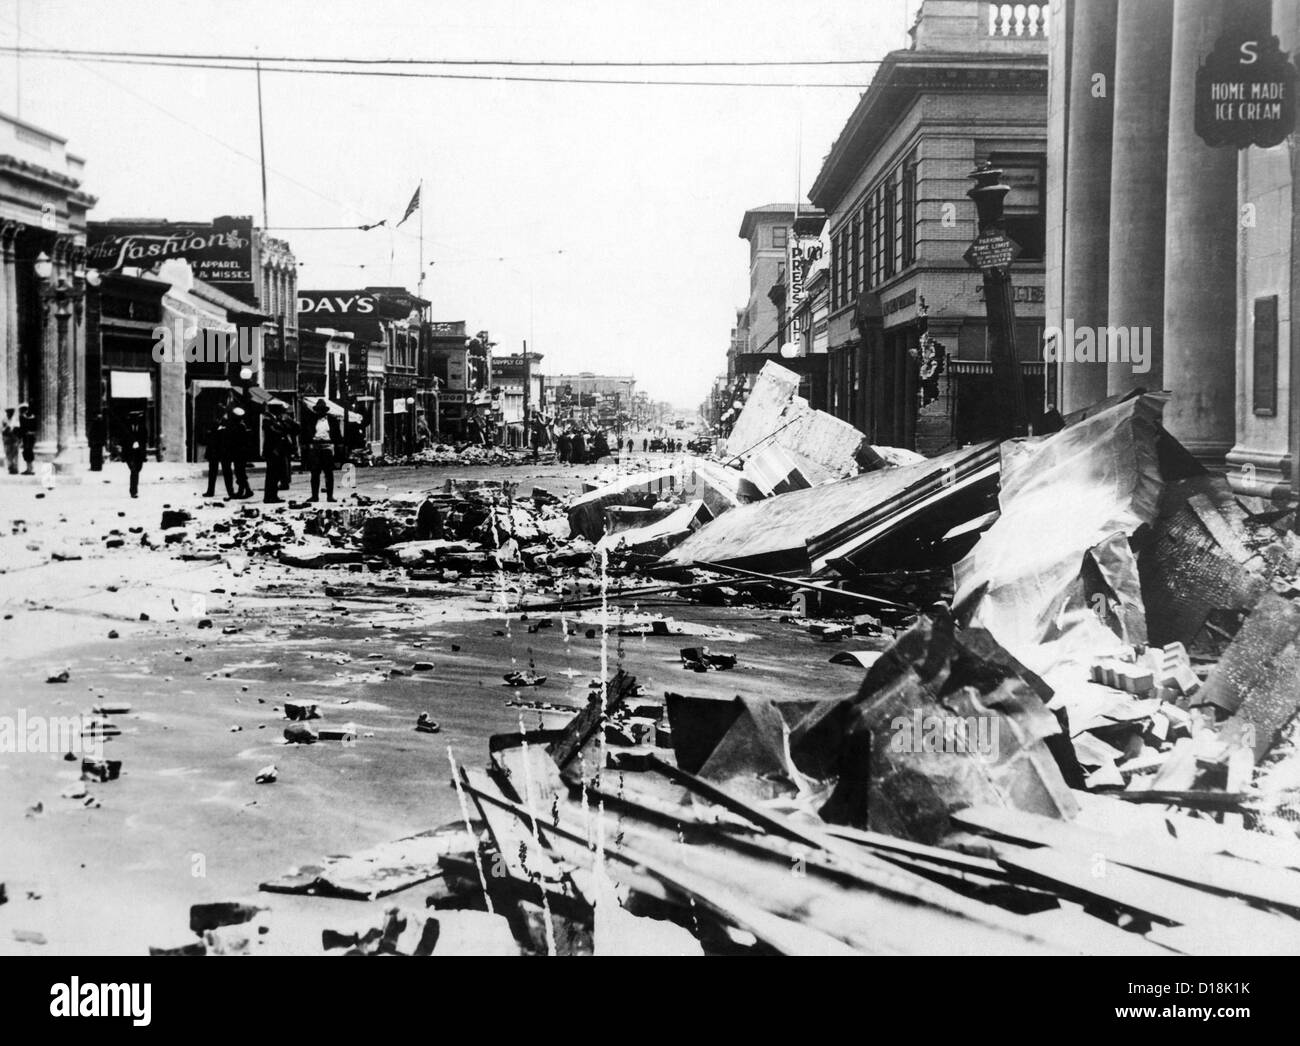 Santa Barbara earthquake of 1925 registered 6.8 on the Richter scale. Major damage occurred in the city and killed - Stock Image